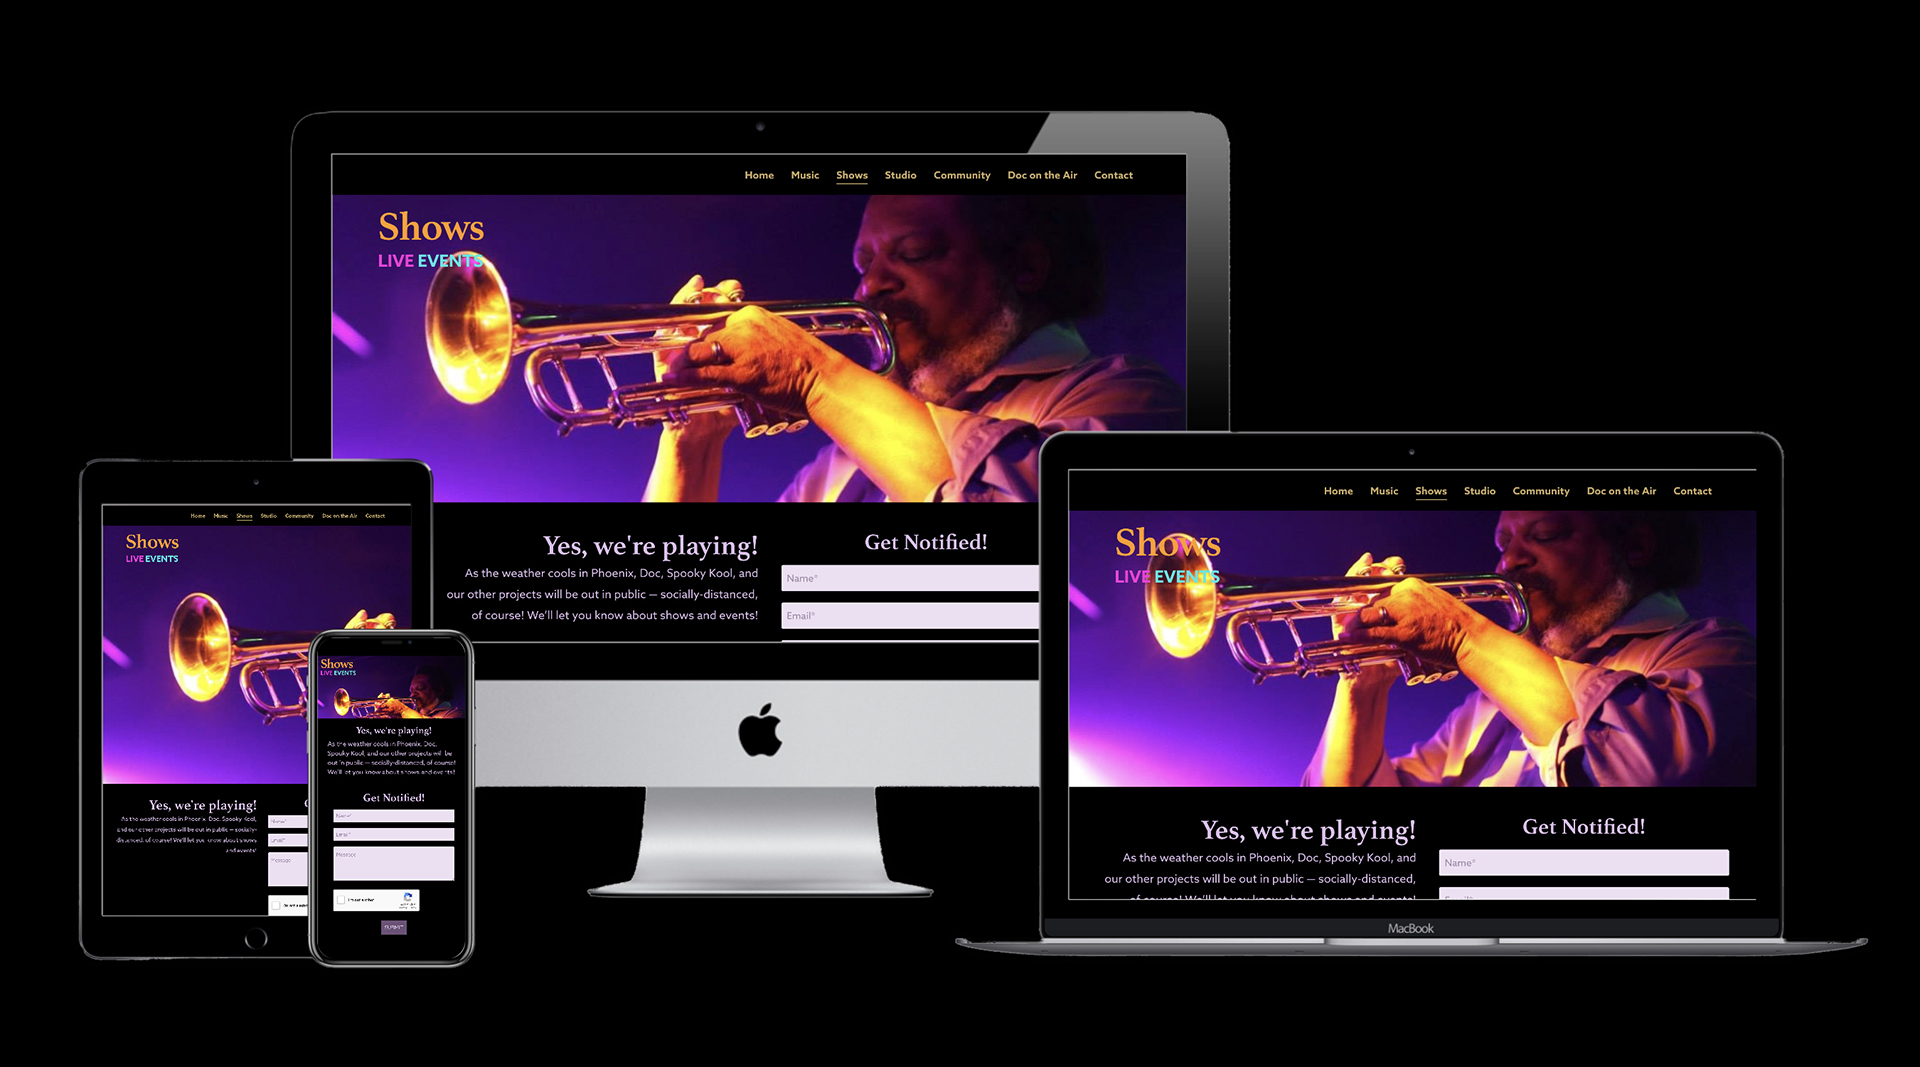 Graphic showing the Shows page on the website designed by Clamshell Communications for Gabriel Bey on four device screens